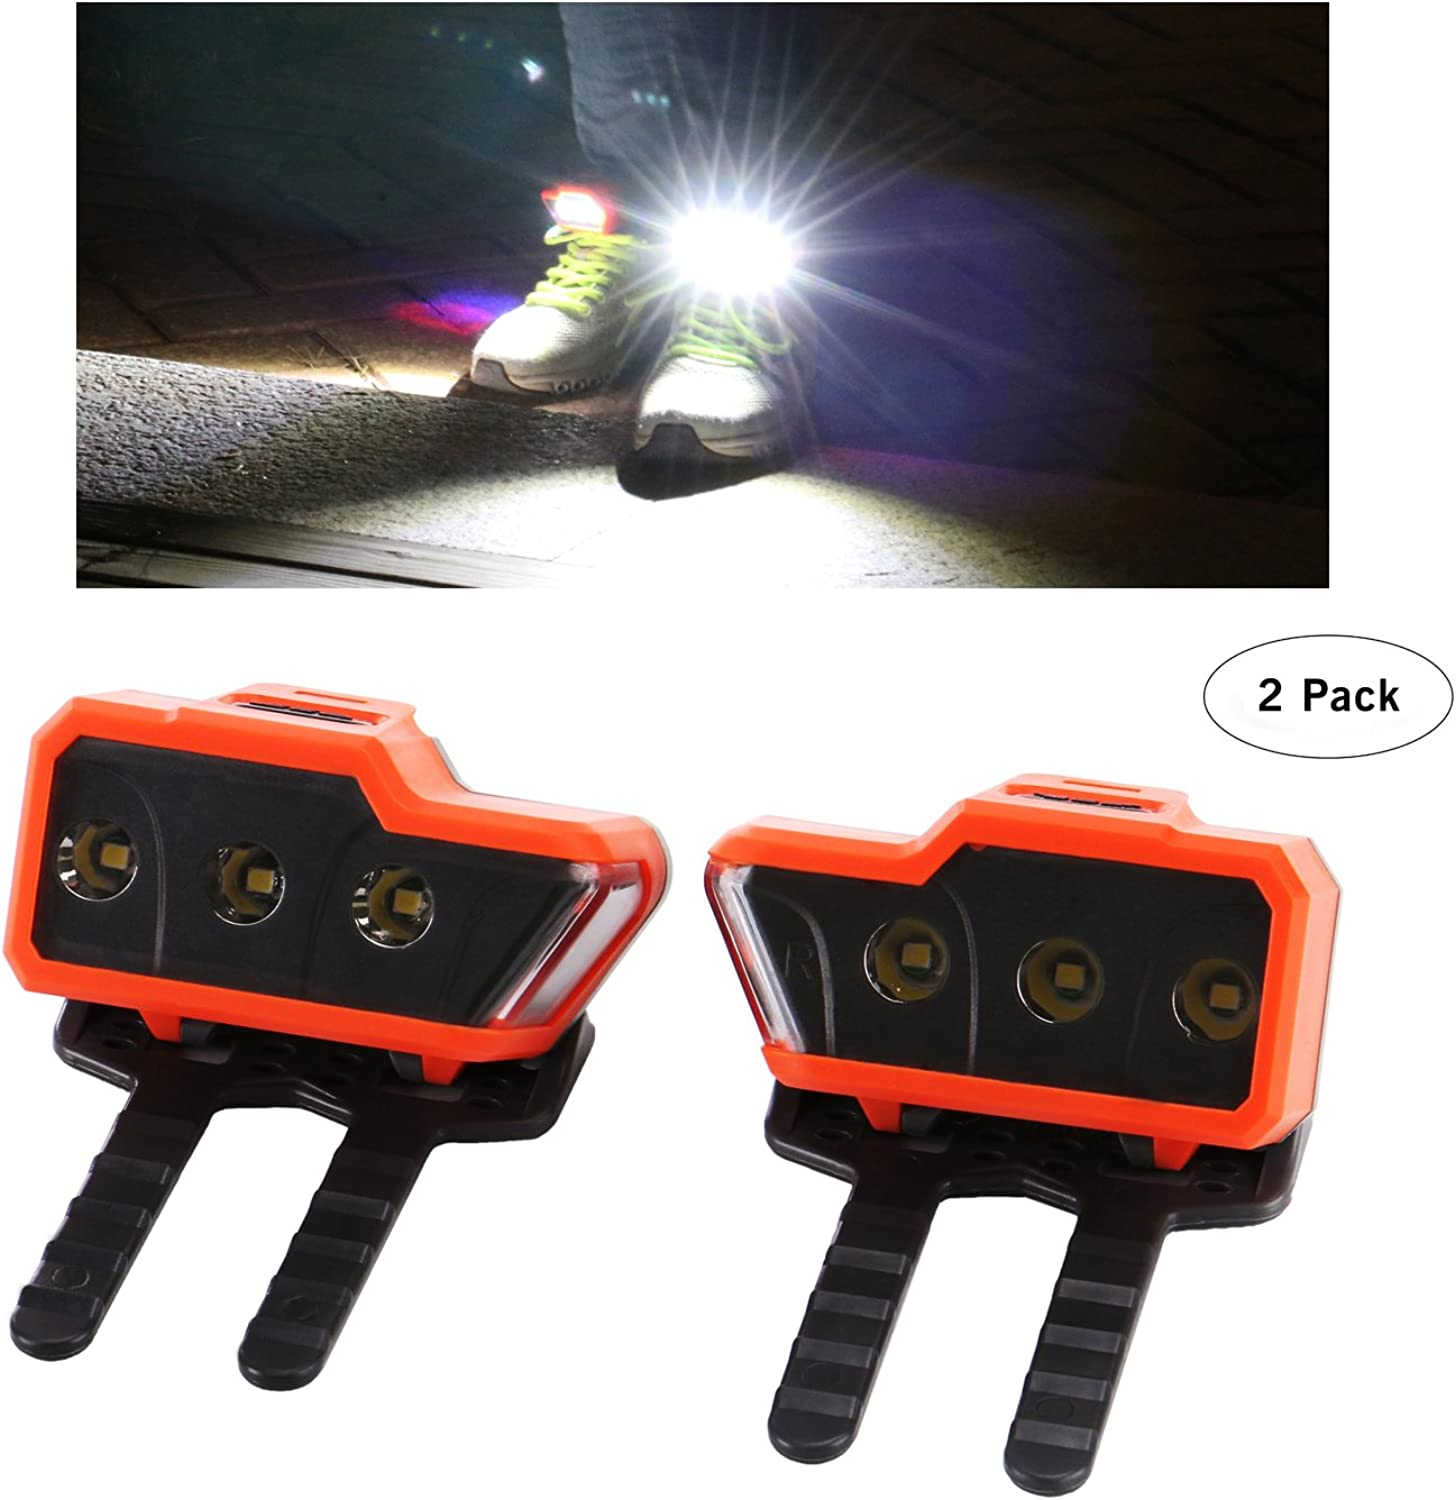 Greensyi LED Safety Lights (2pack) for Running shoes with Three Bright LEDs and One Side Warning Light Good for Night Running Walking Hiking Cycling.